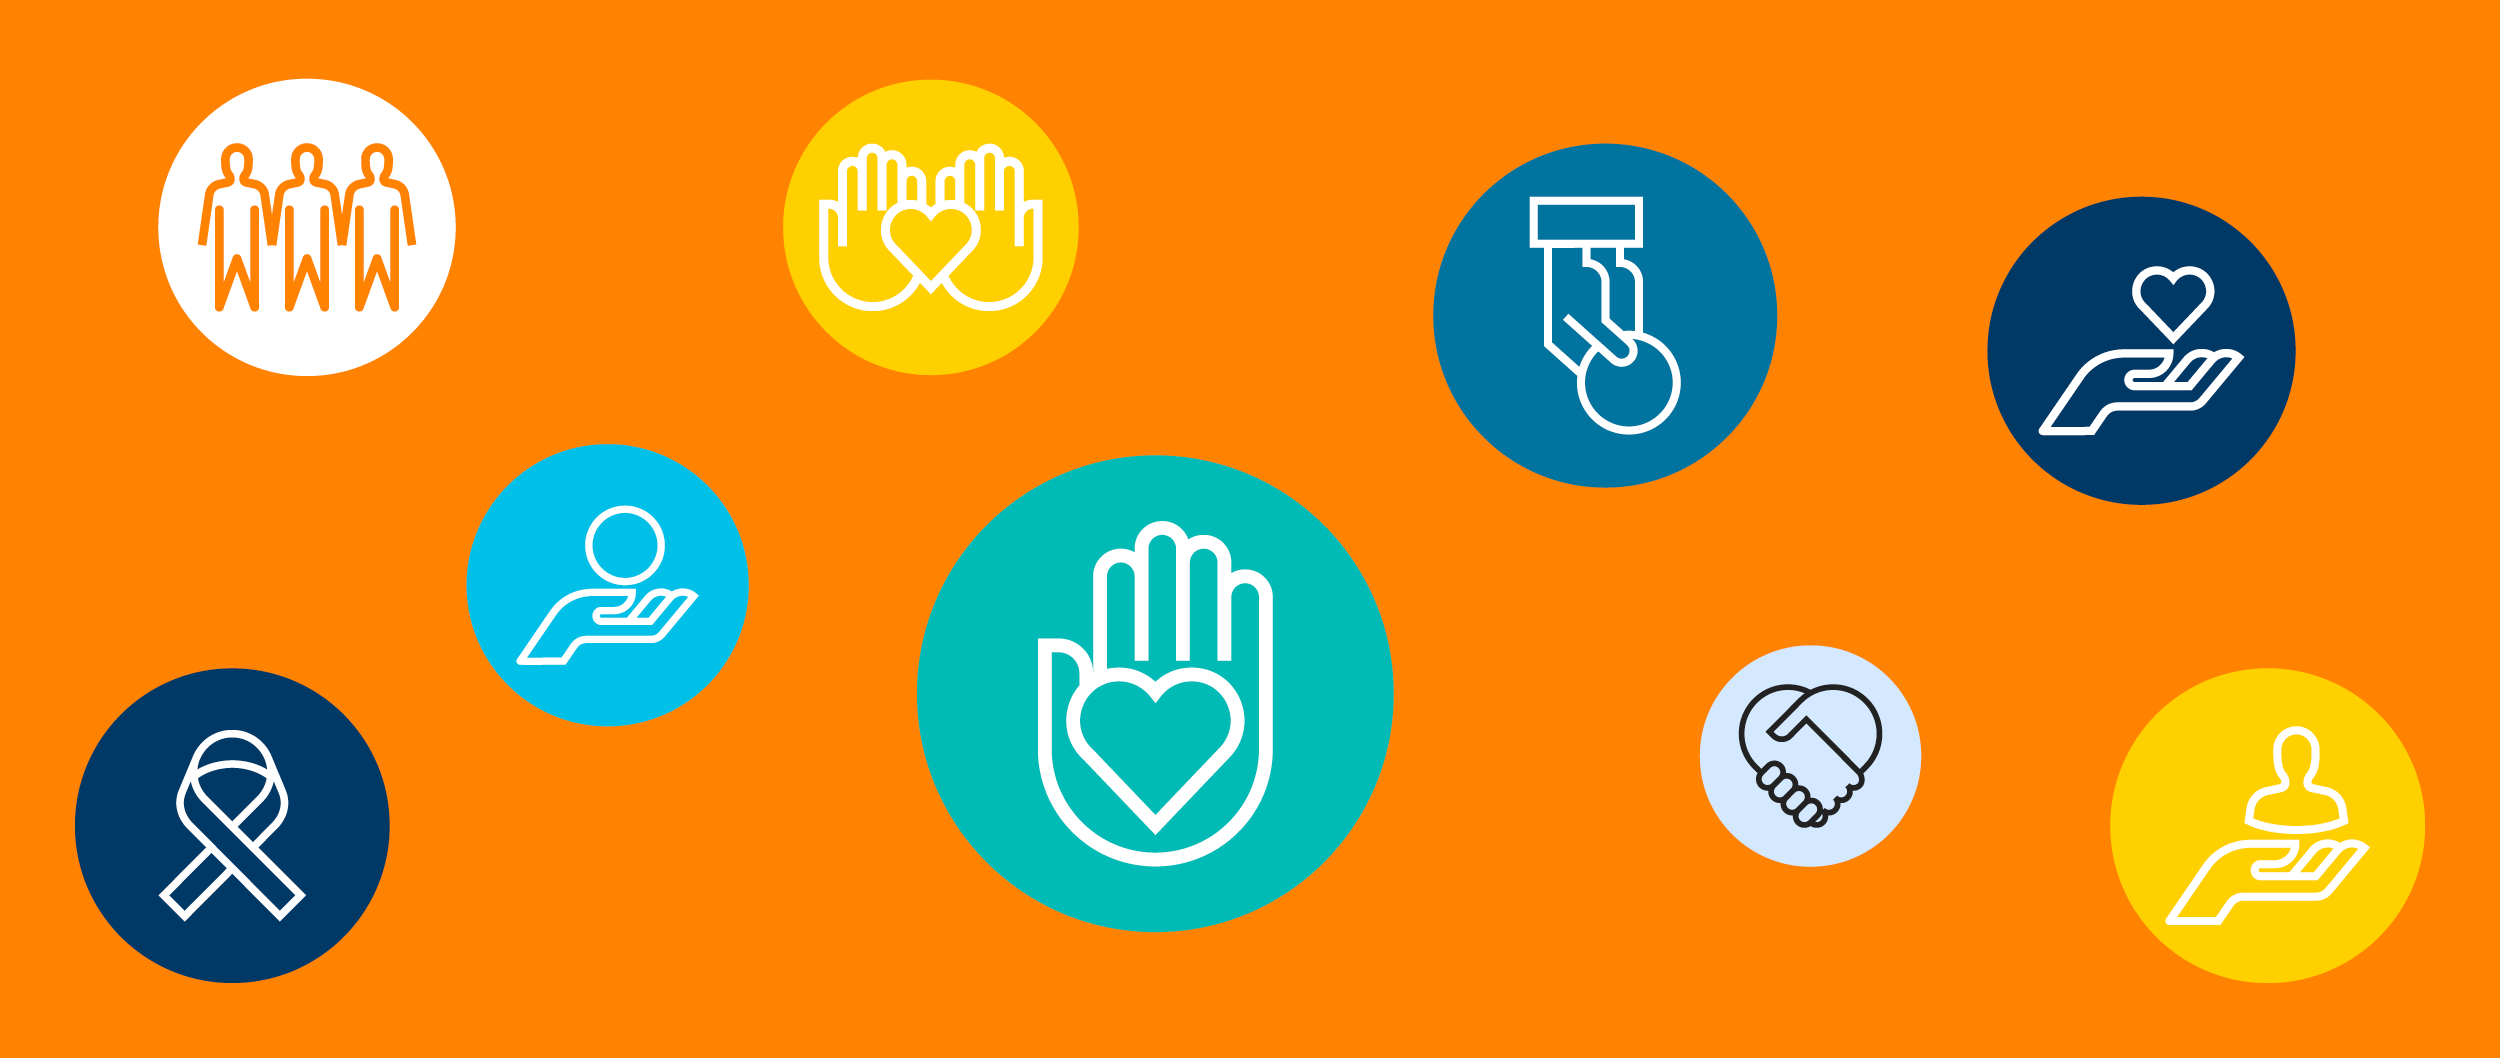 9 icons illustrating giving and community: a ribbon, a heart in someone's hand, three people standing together, a person's hand holding a coin